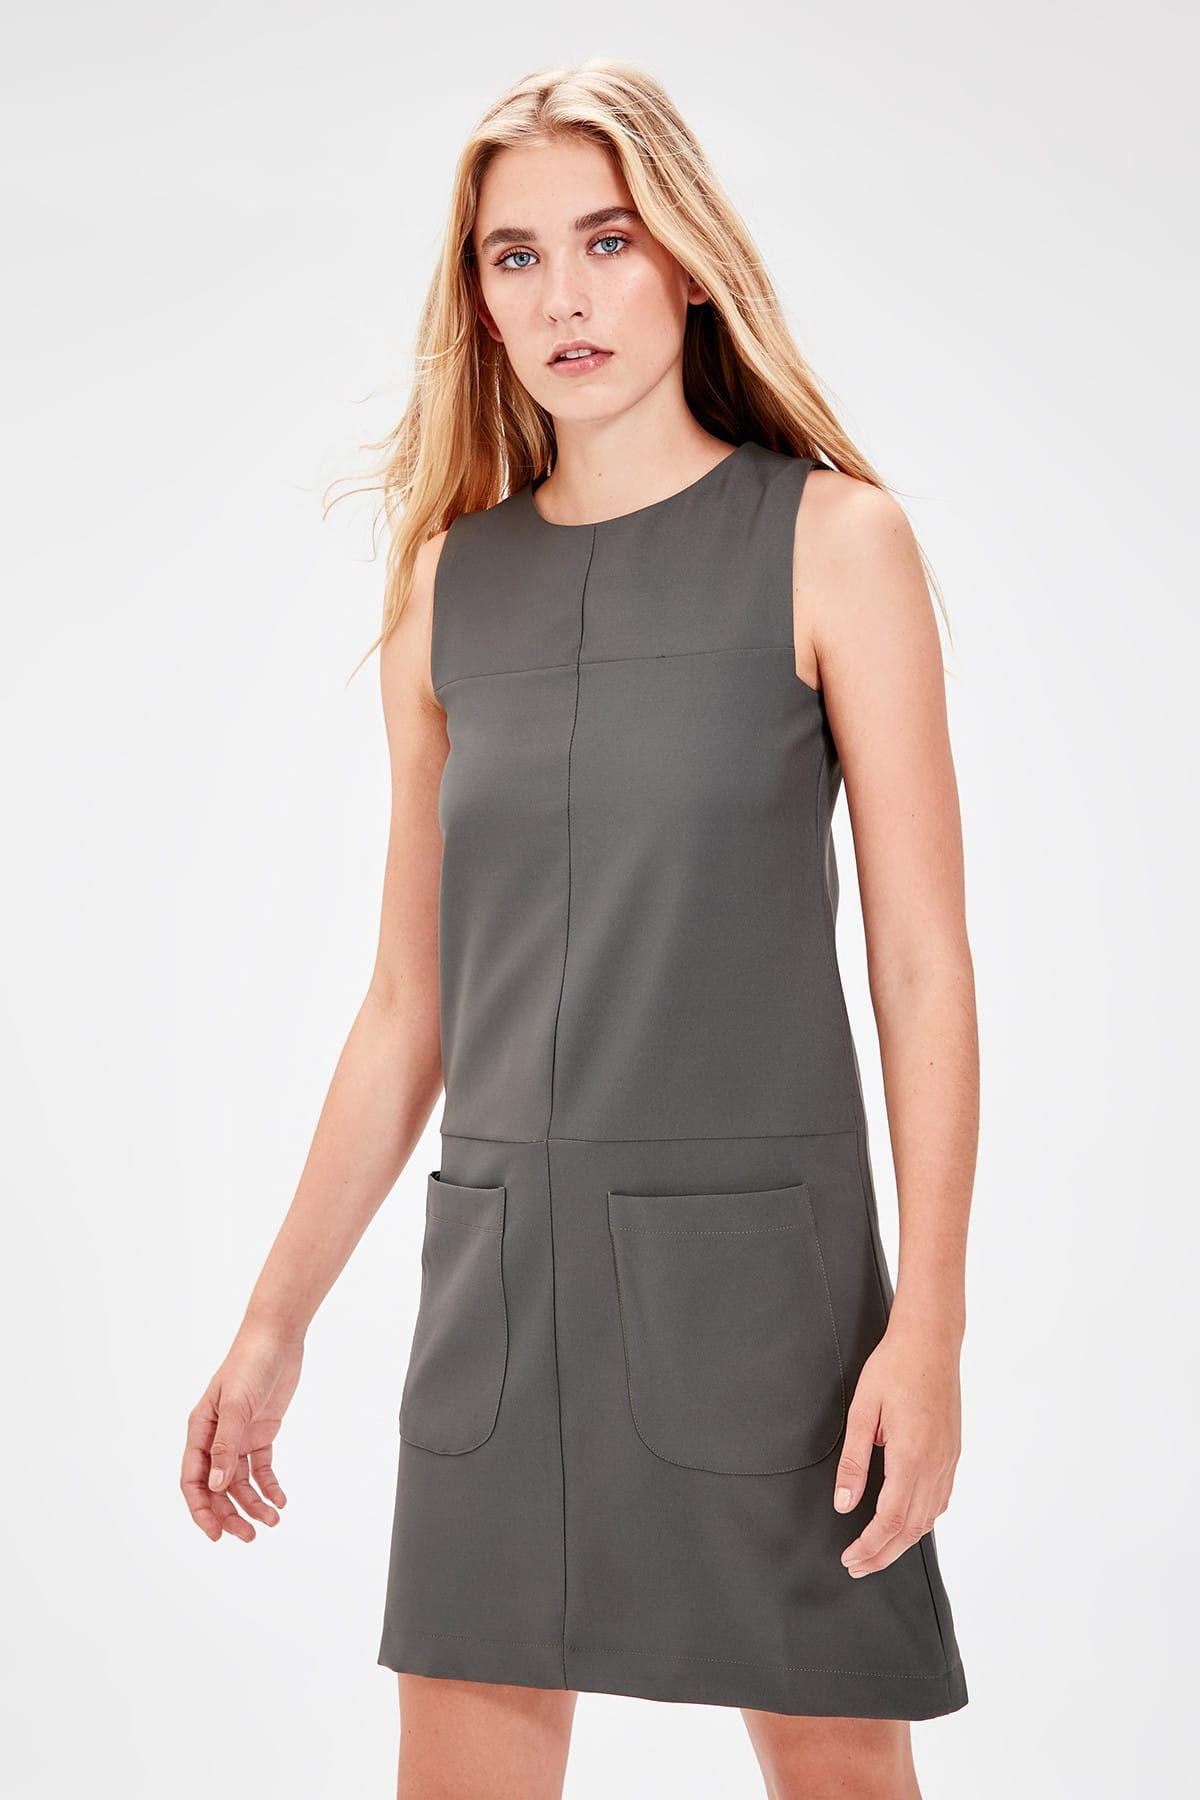 Trendyol Khaki Pocket Dress